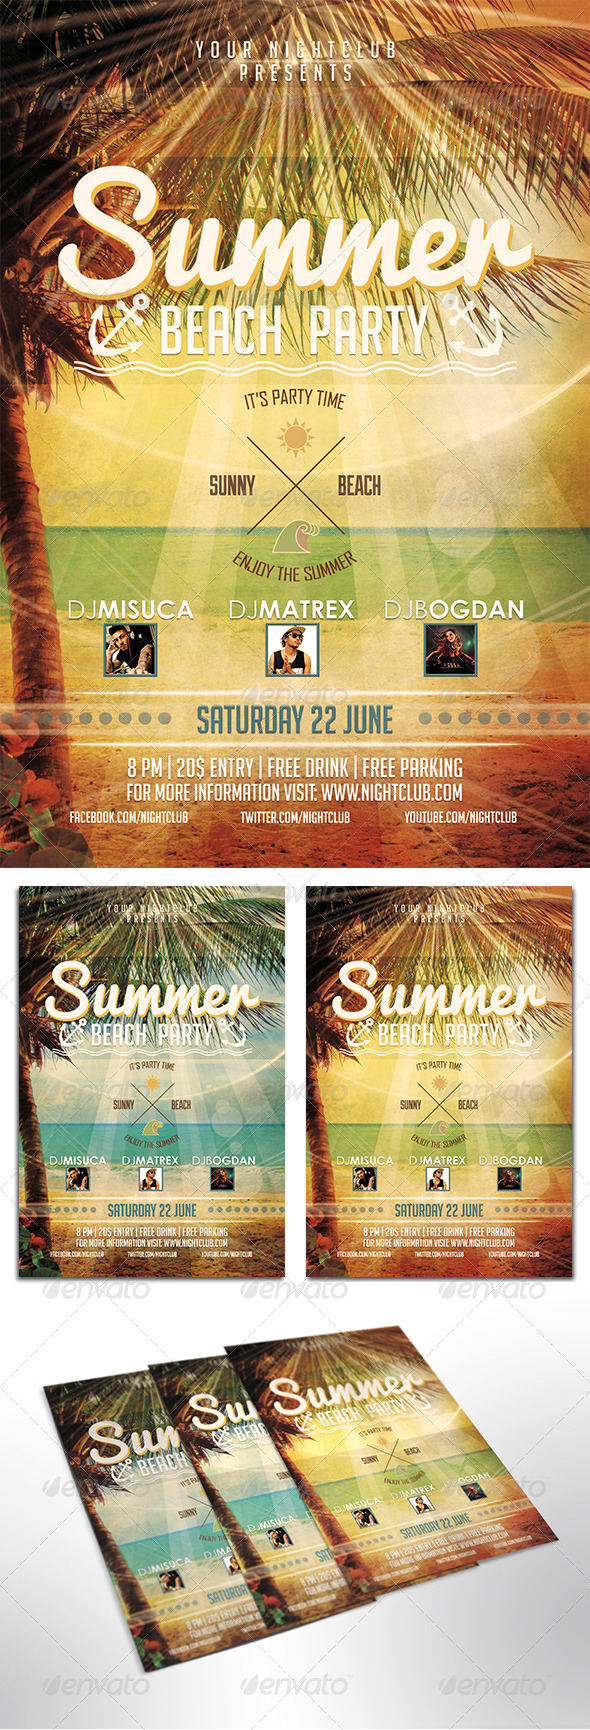 GraphicRiver Summer Beach Party Flyer 7999043